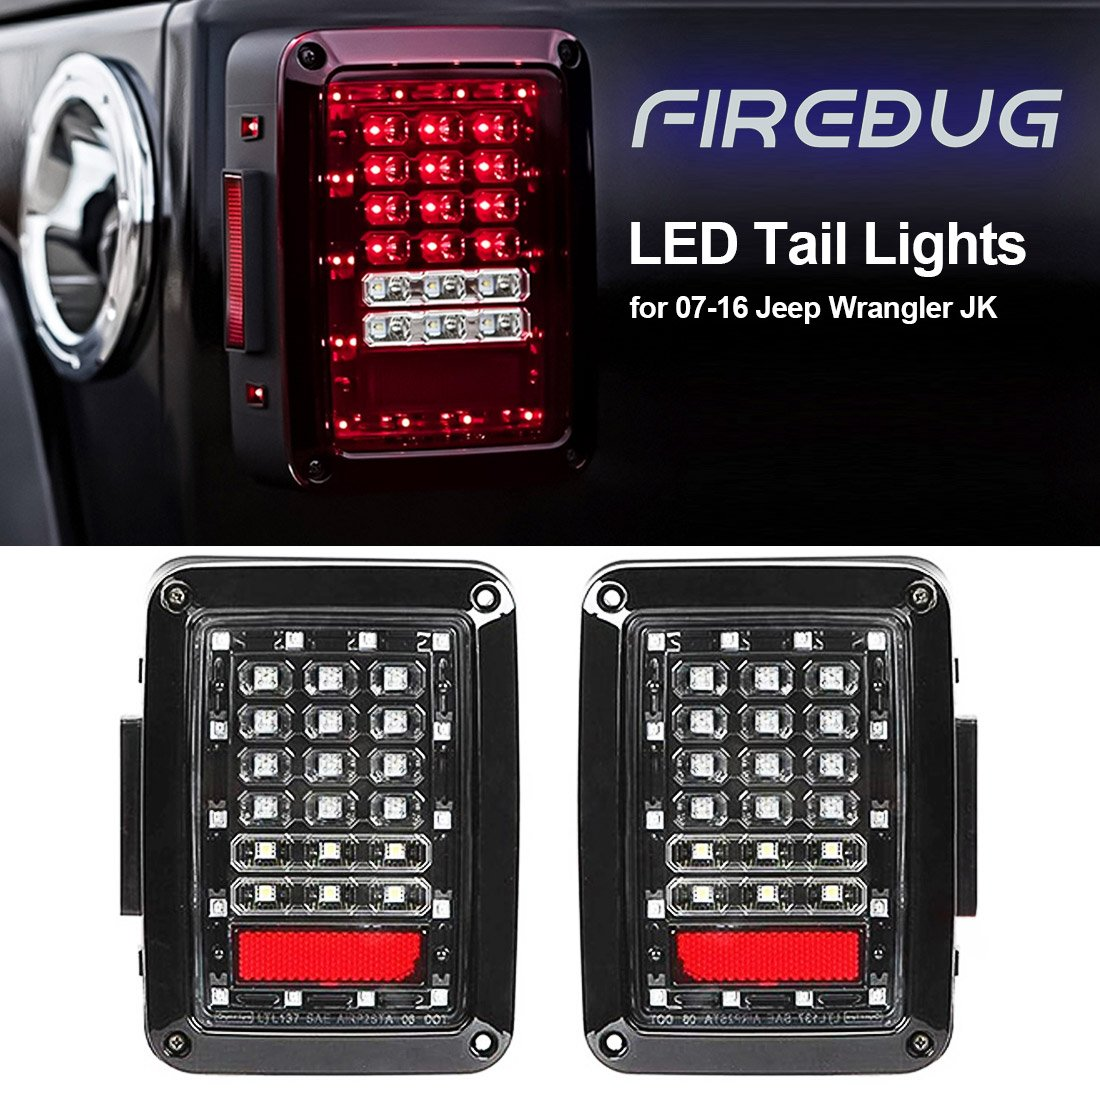 Amazon.com: Firebug Jeep Wrangler Rear LED Lights, Jeep Wrangler LED ...